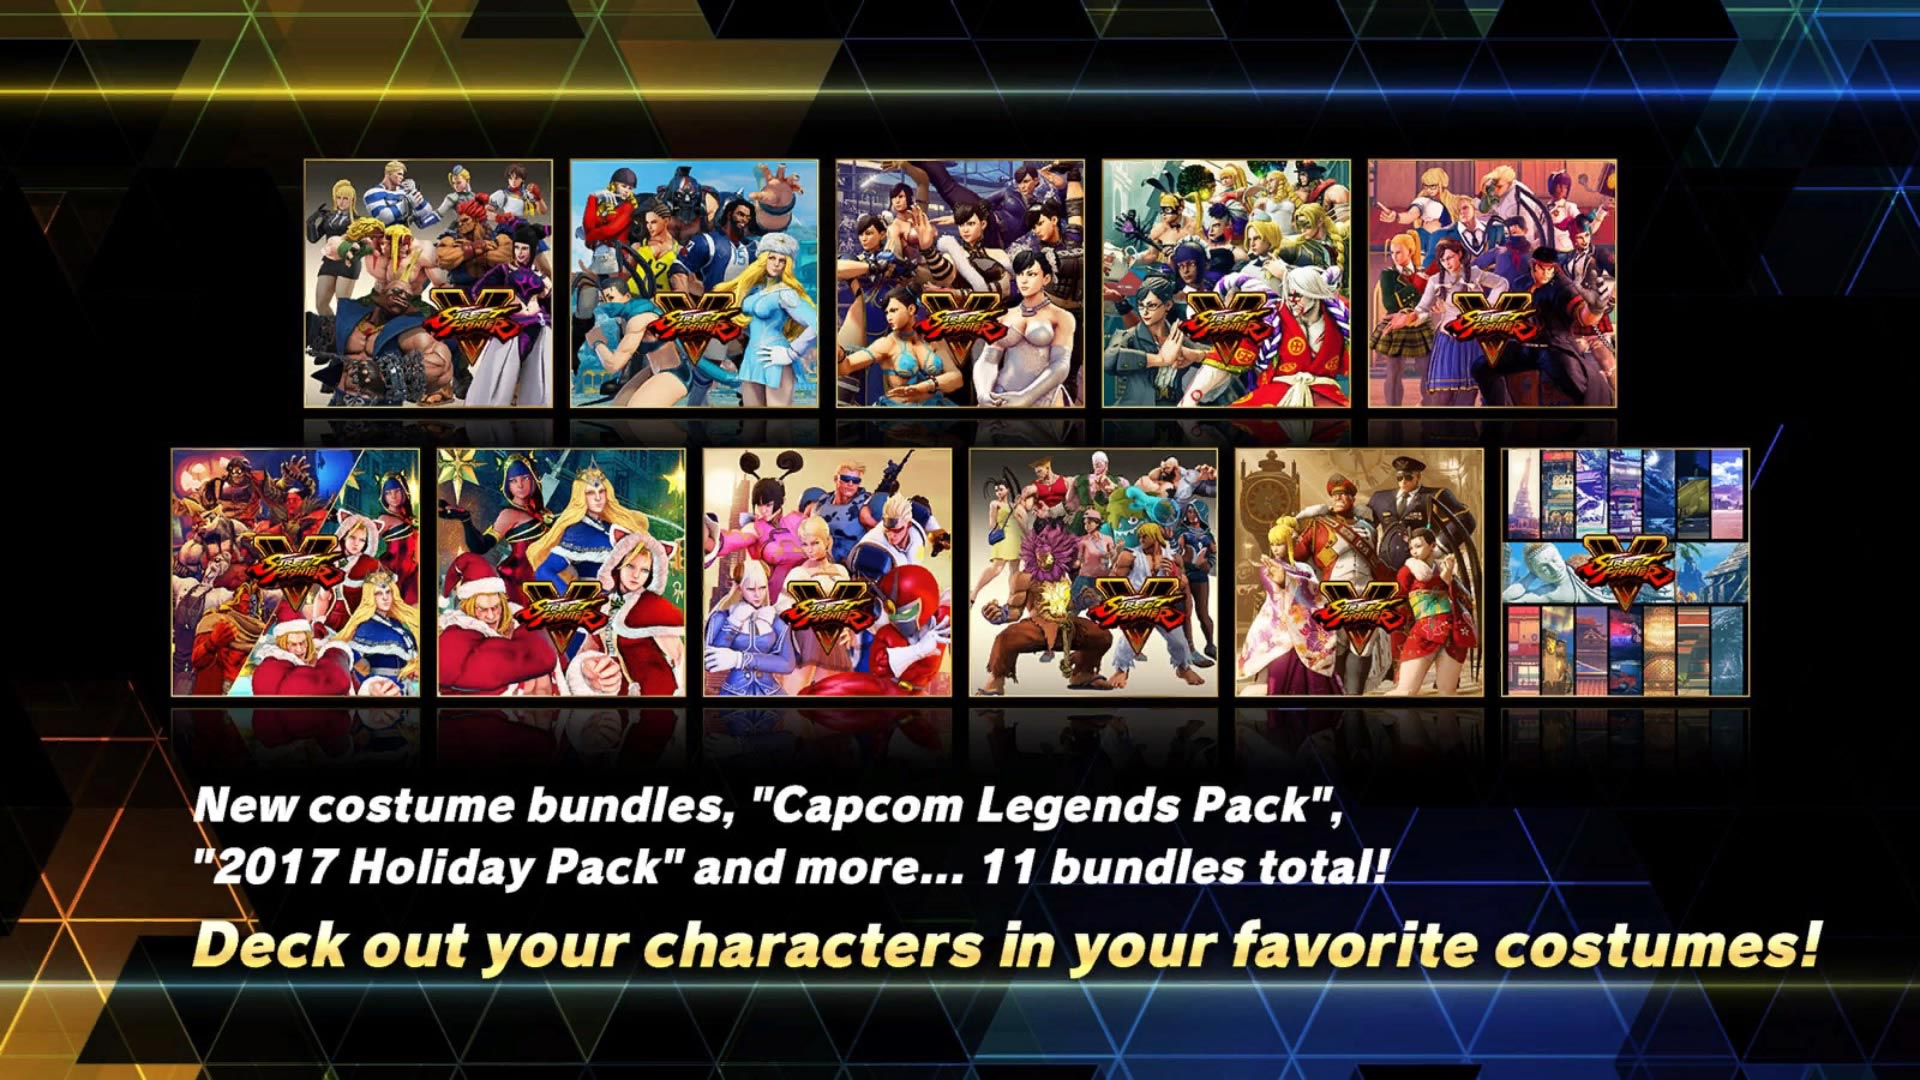 Street Fighter 5: Arcade Edition's sponsored content screenshots 5 out of 6 image gallery